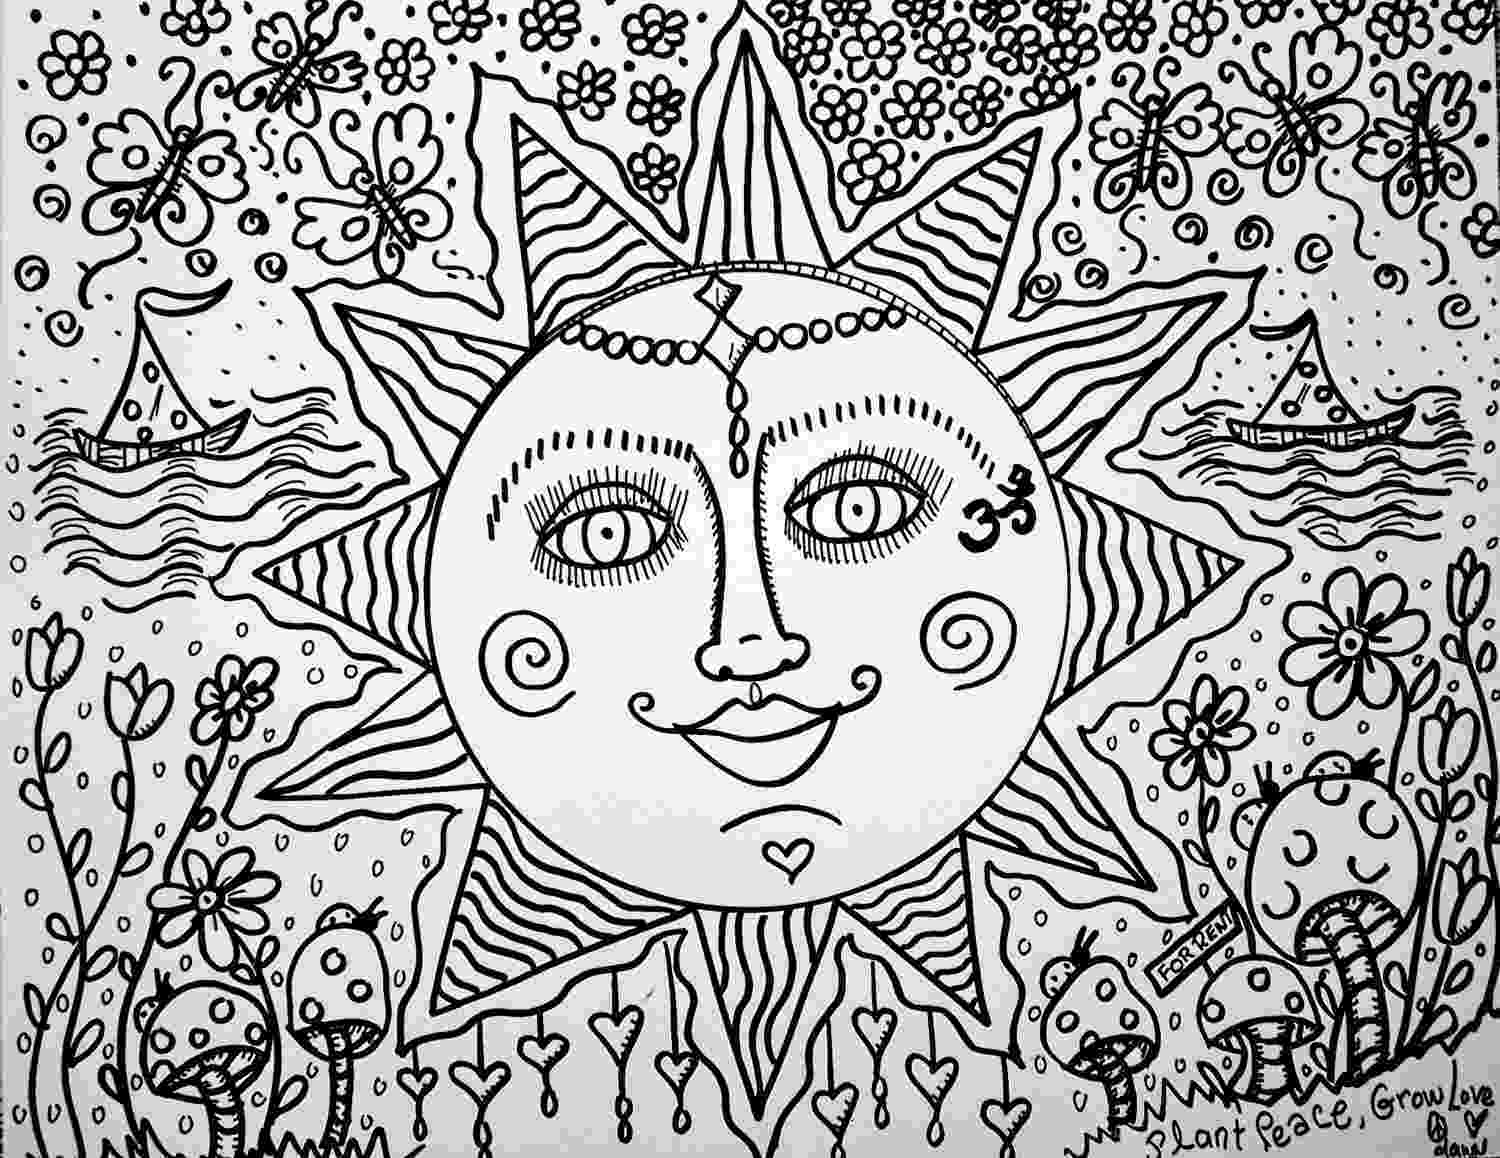 hippie coloring sheets hippie coloring pages coloring home sheets hippie coloring